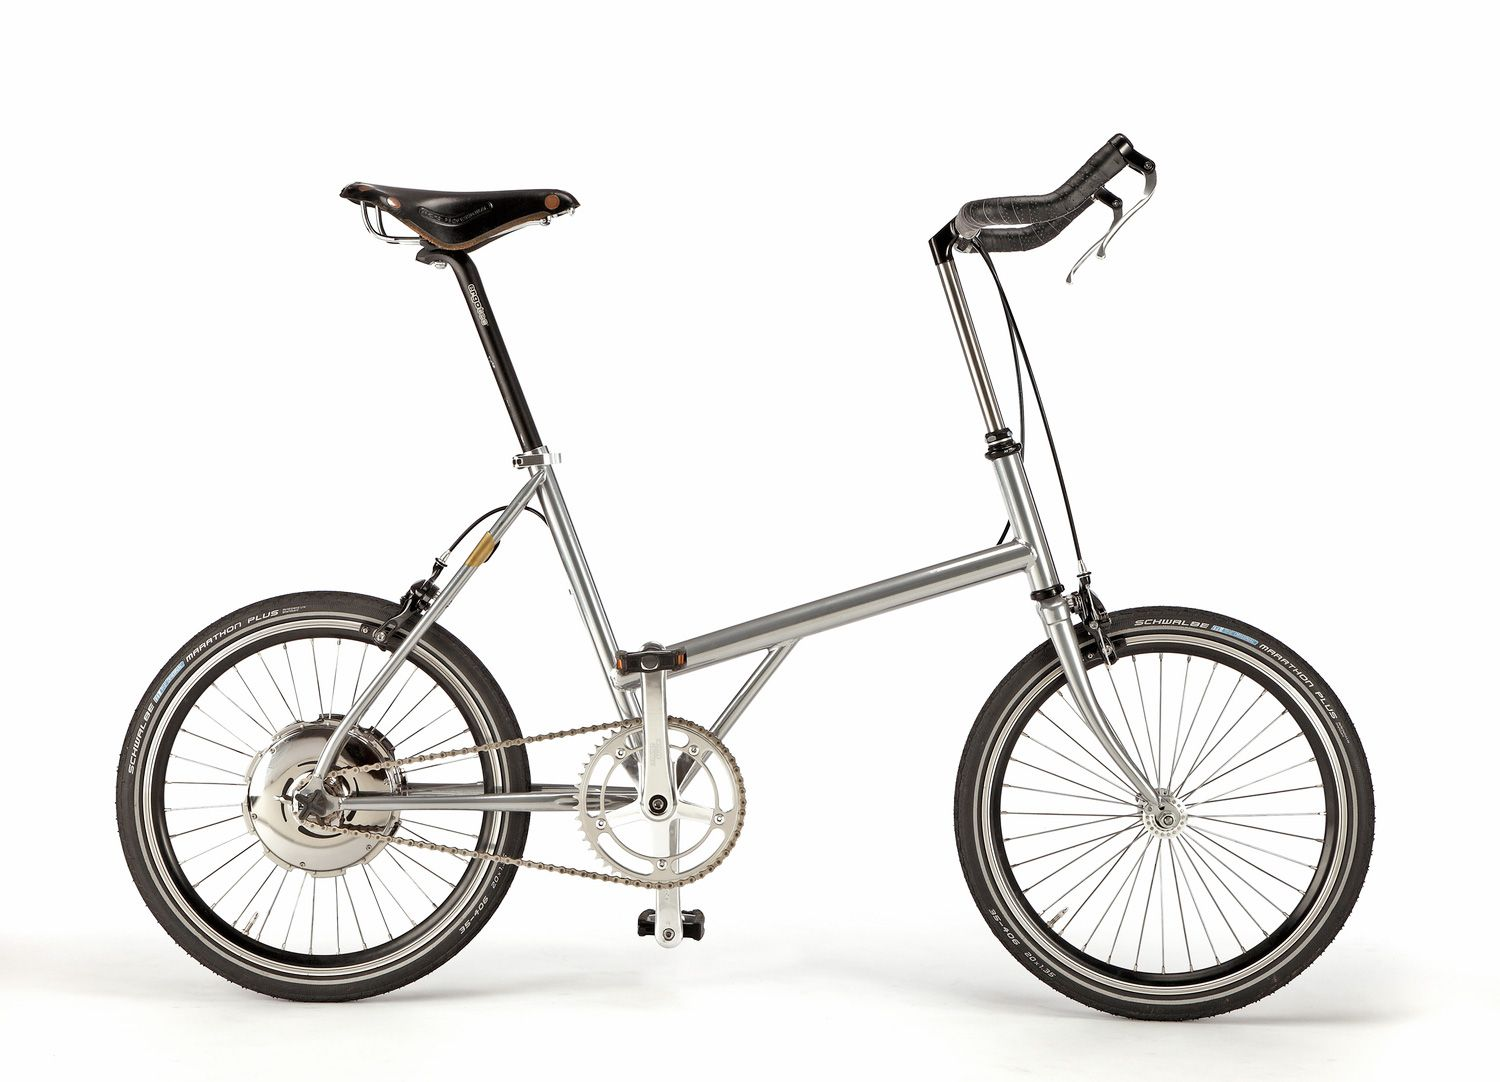 Cattiva By Vrum Bike Bike Hybrid Bike Bike Design